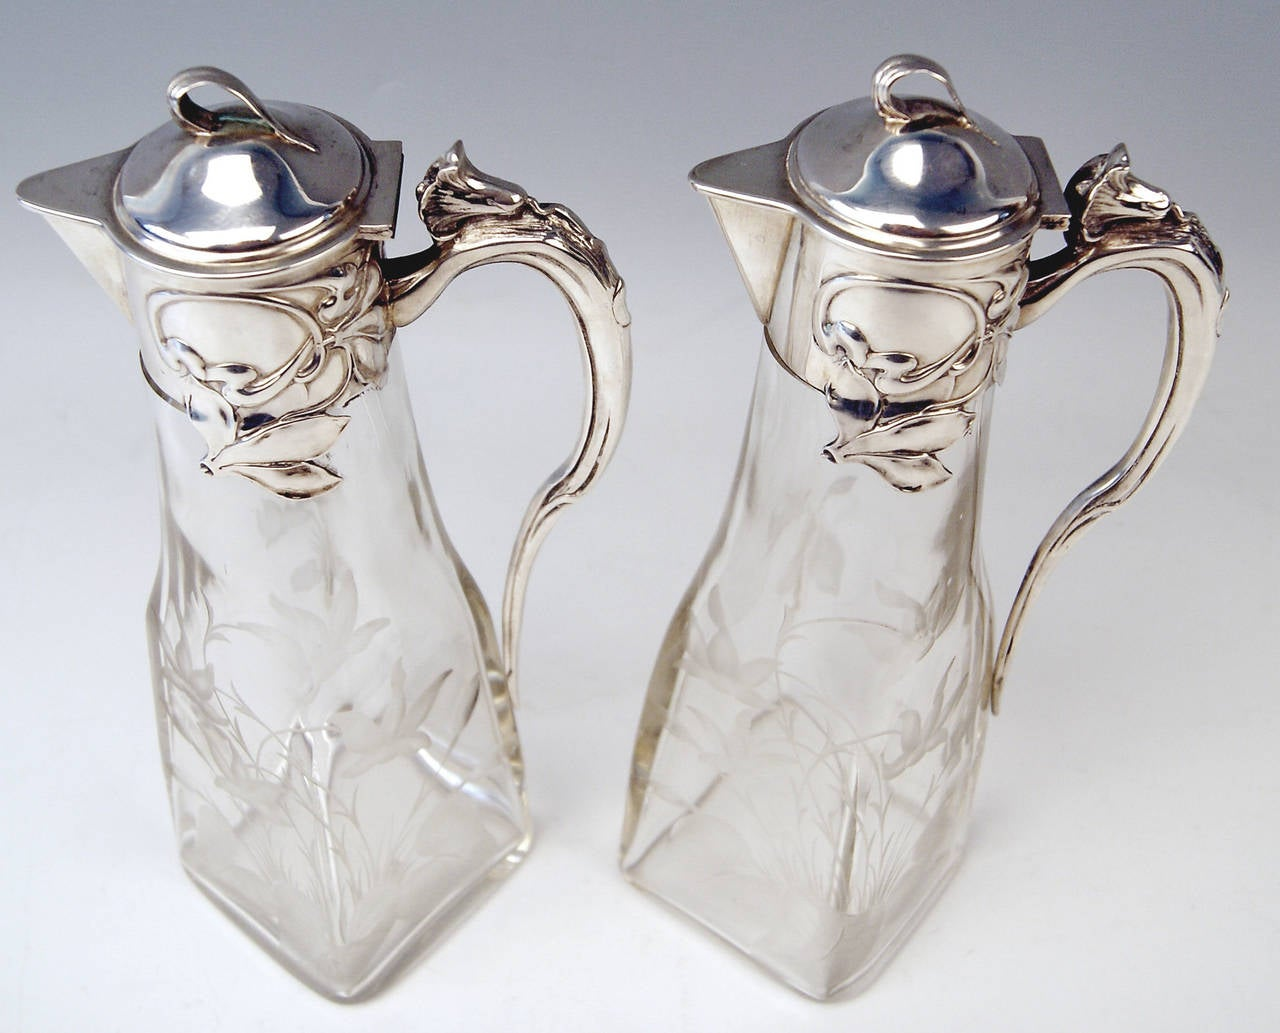 Silver Art Nouveau German Pair of Glass Decanters by Otto Wolter, circa 1900 7